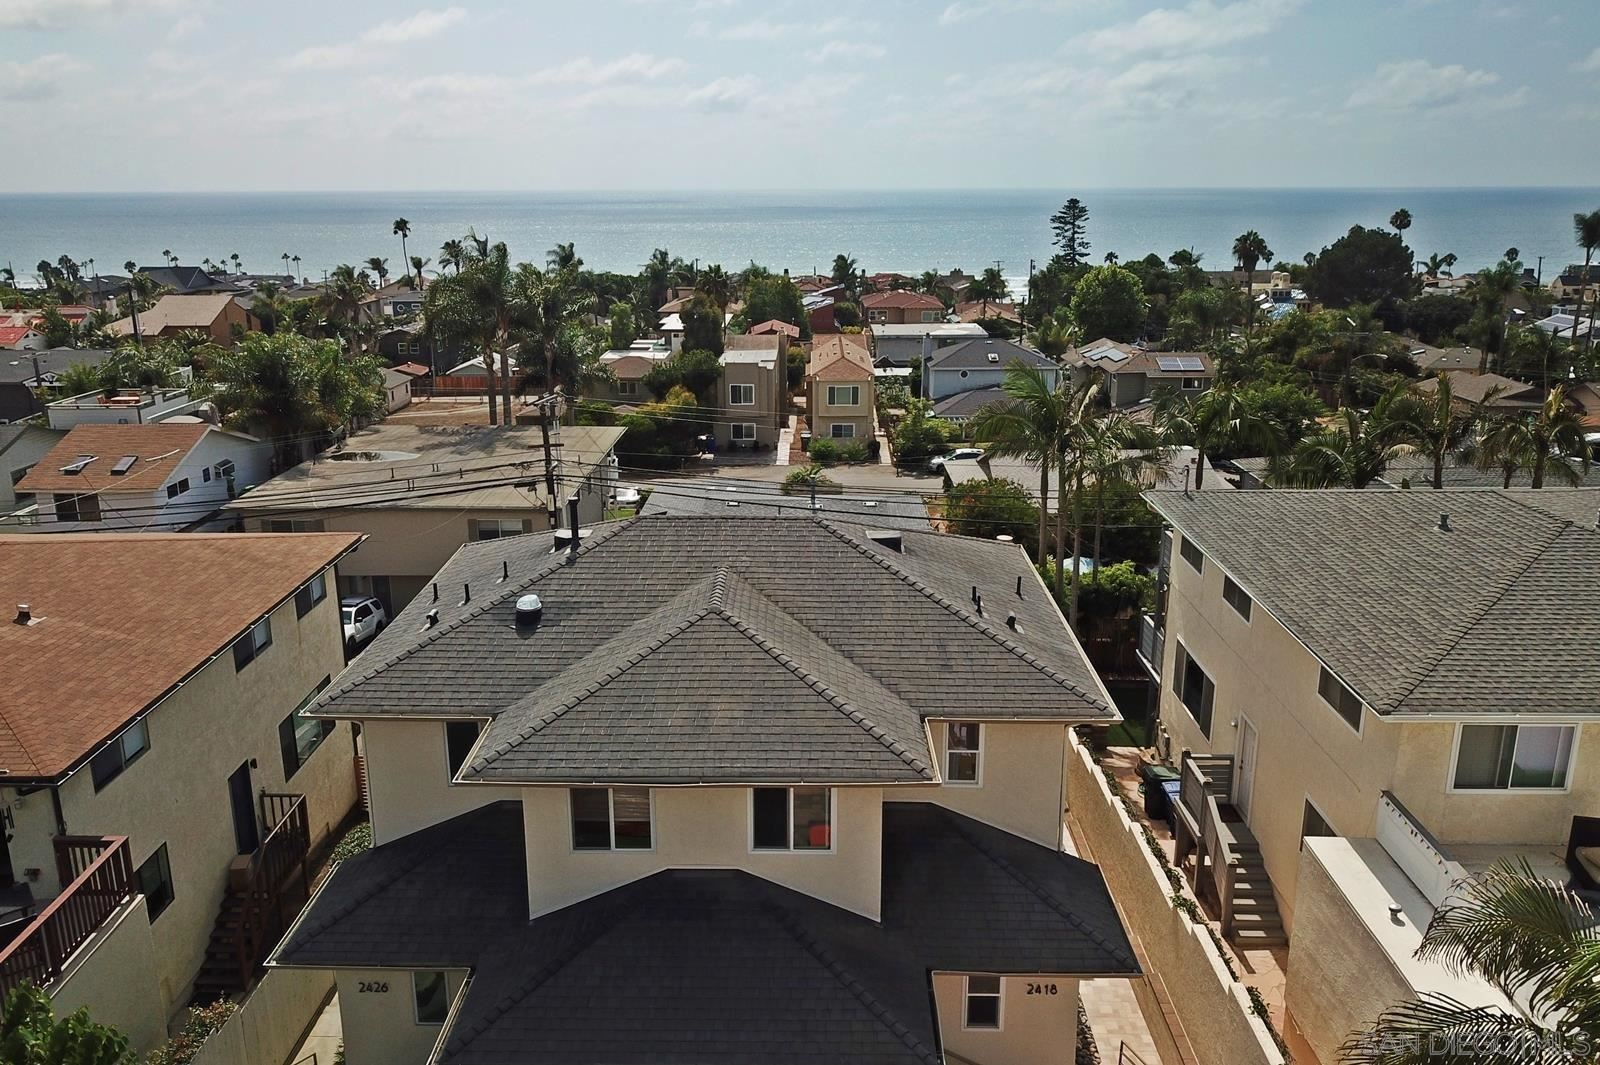 Photo of 2418 Manchester Ave, Cardiff By The Sea, CA 92007 (MLS # 210025096)